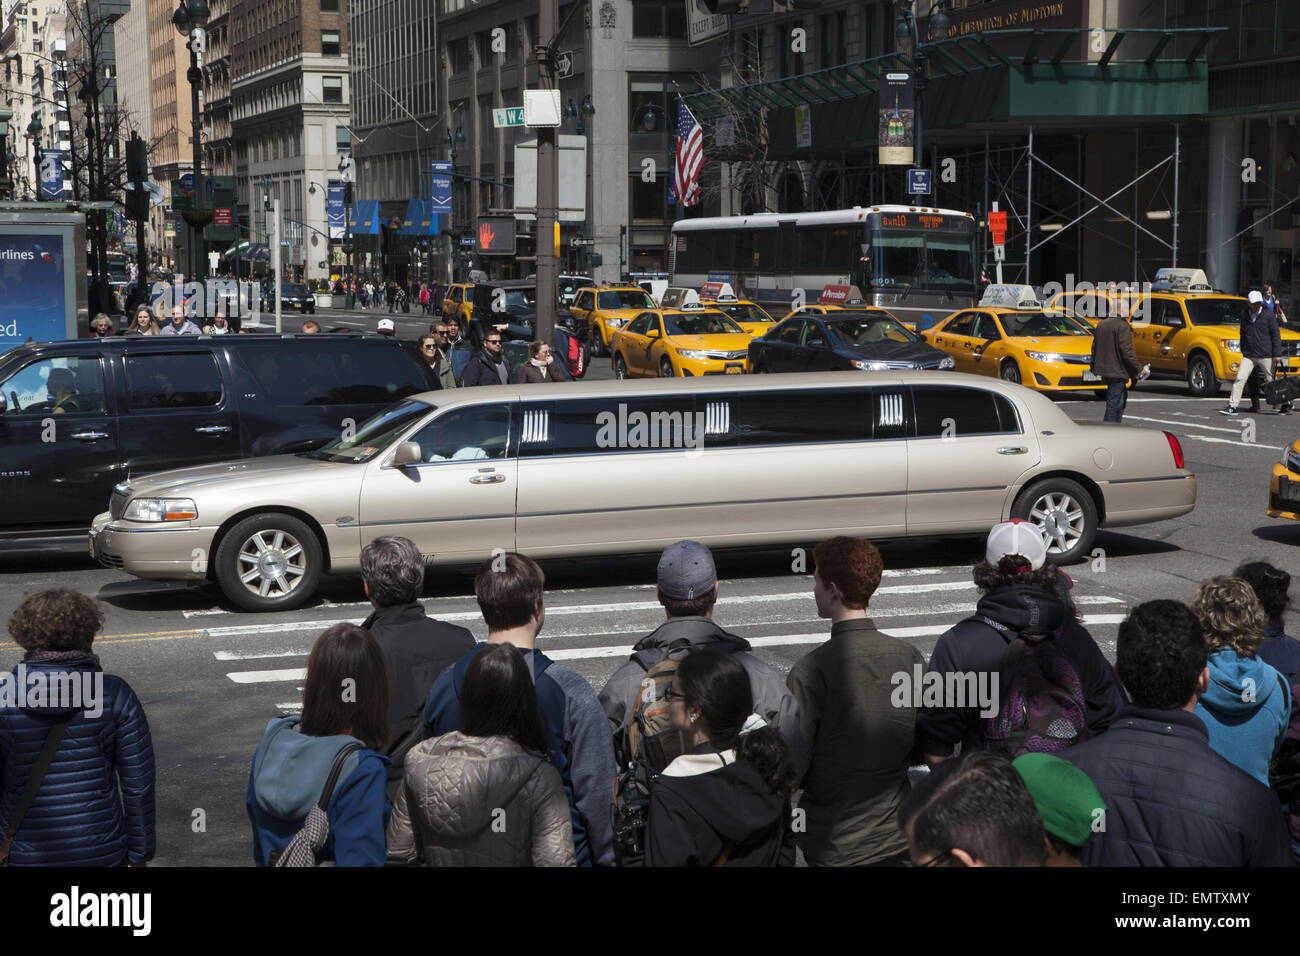 A stretch limousine crosses 5th Ave on 42nd St., a corner that is always crowded with pedestreians. - Stock Image